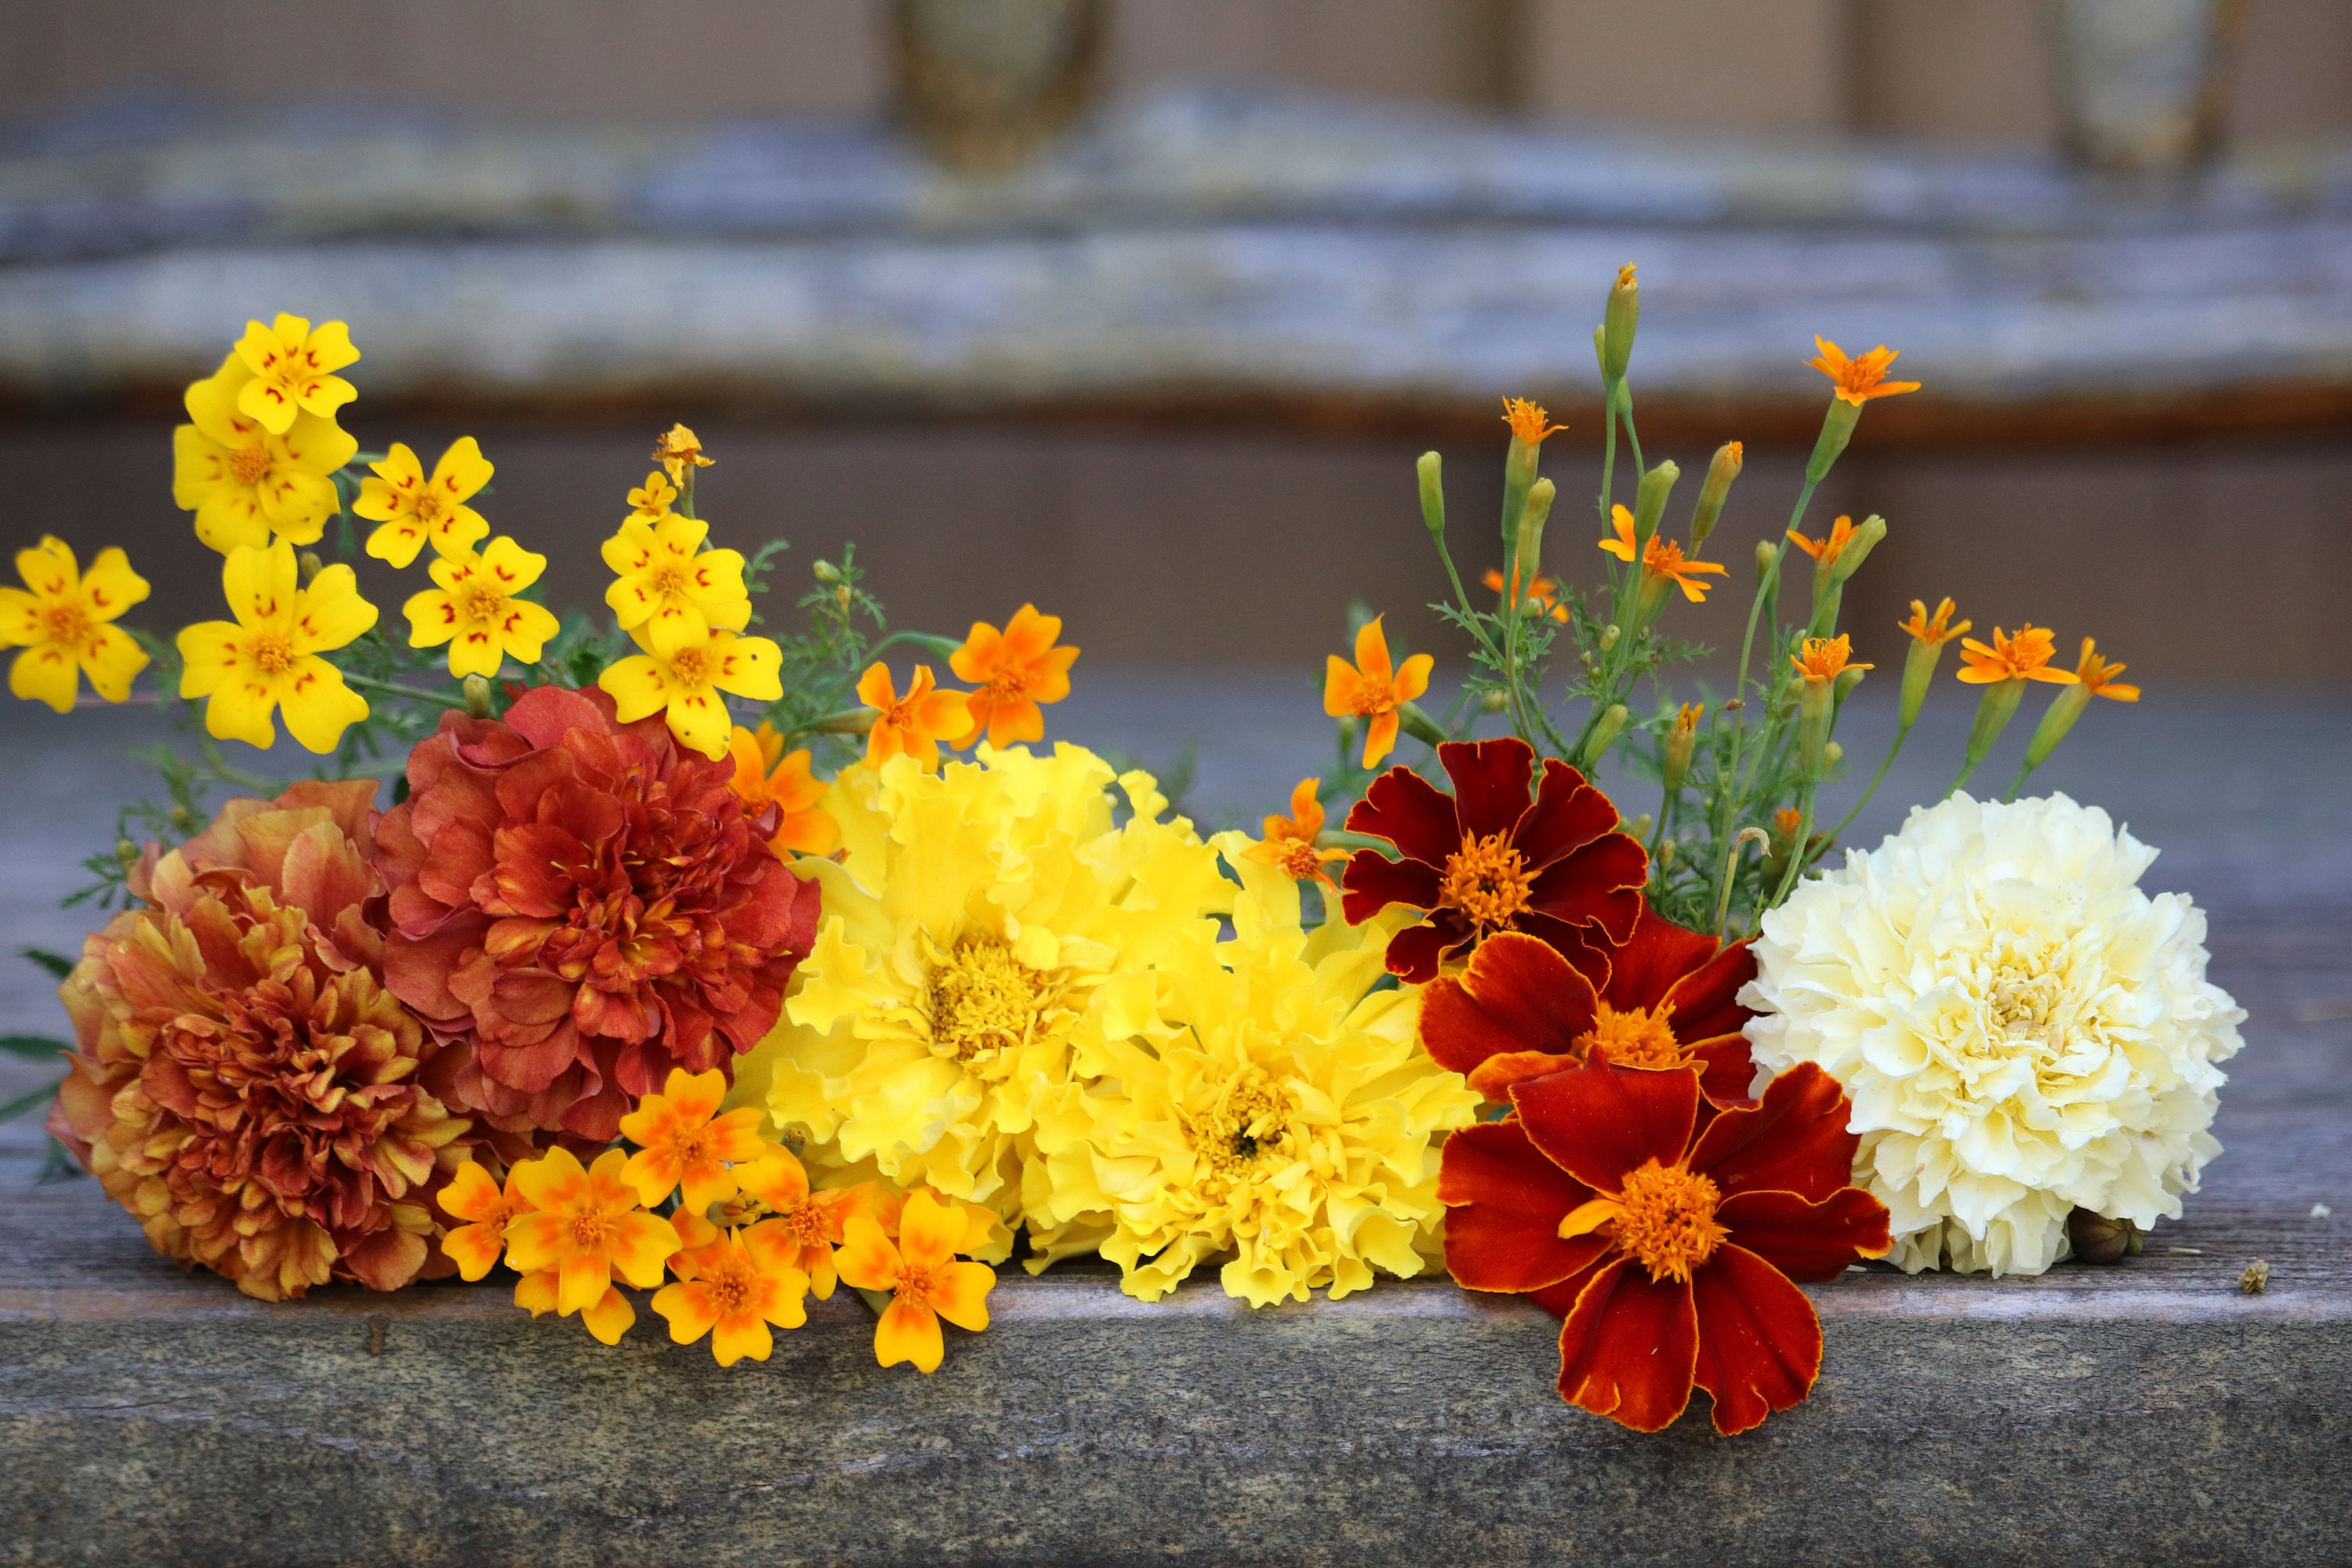 5 Antique Flowers Variety Pack Marigold Seeds Annual Flower Etsy